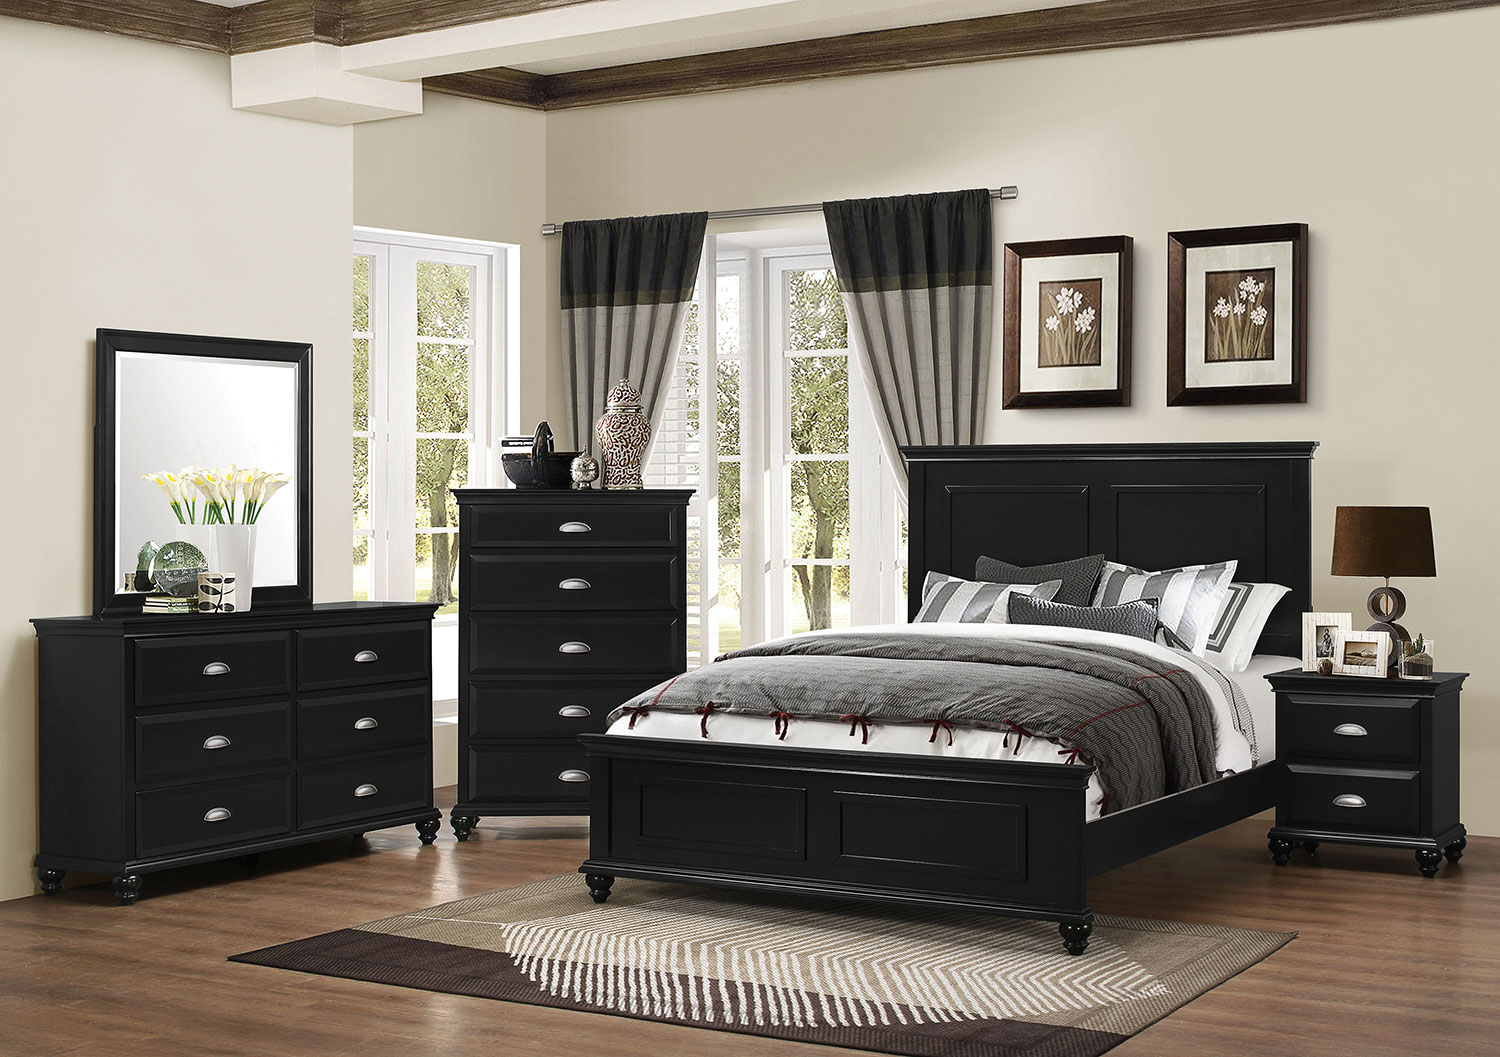 Meadow Grove 4-Piece Queen Bedroom Set with Dresser, Mirror and Chest - Black